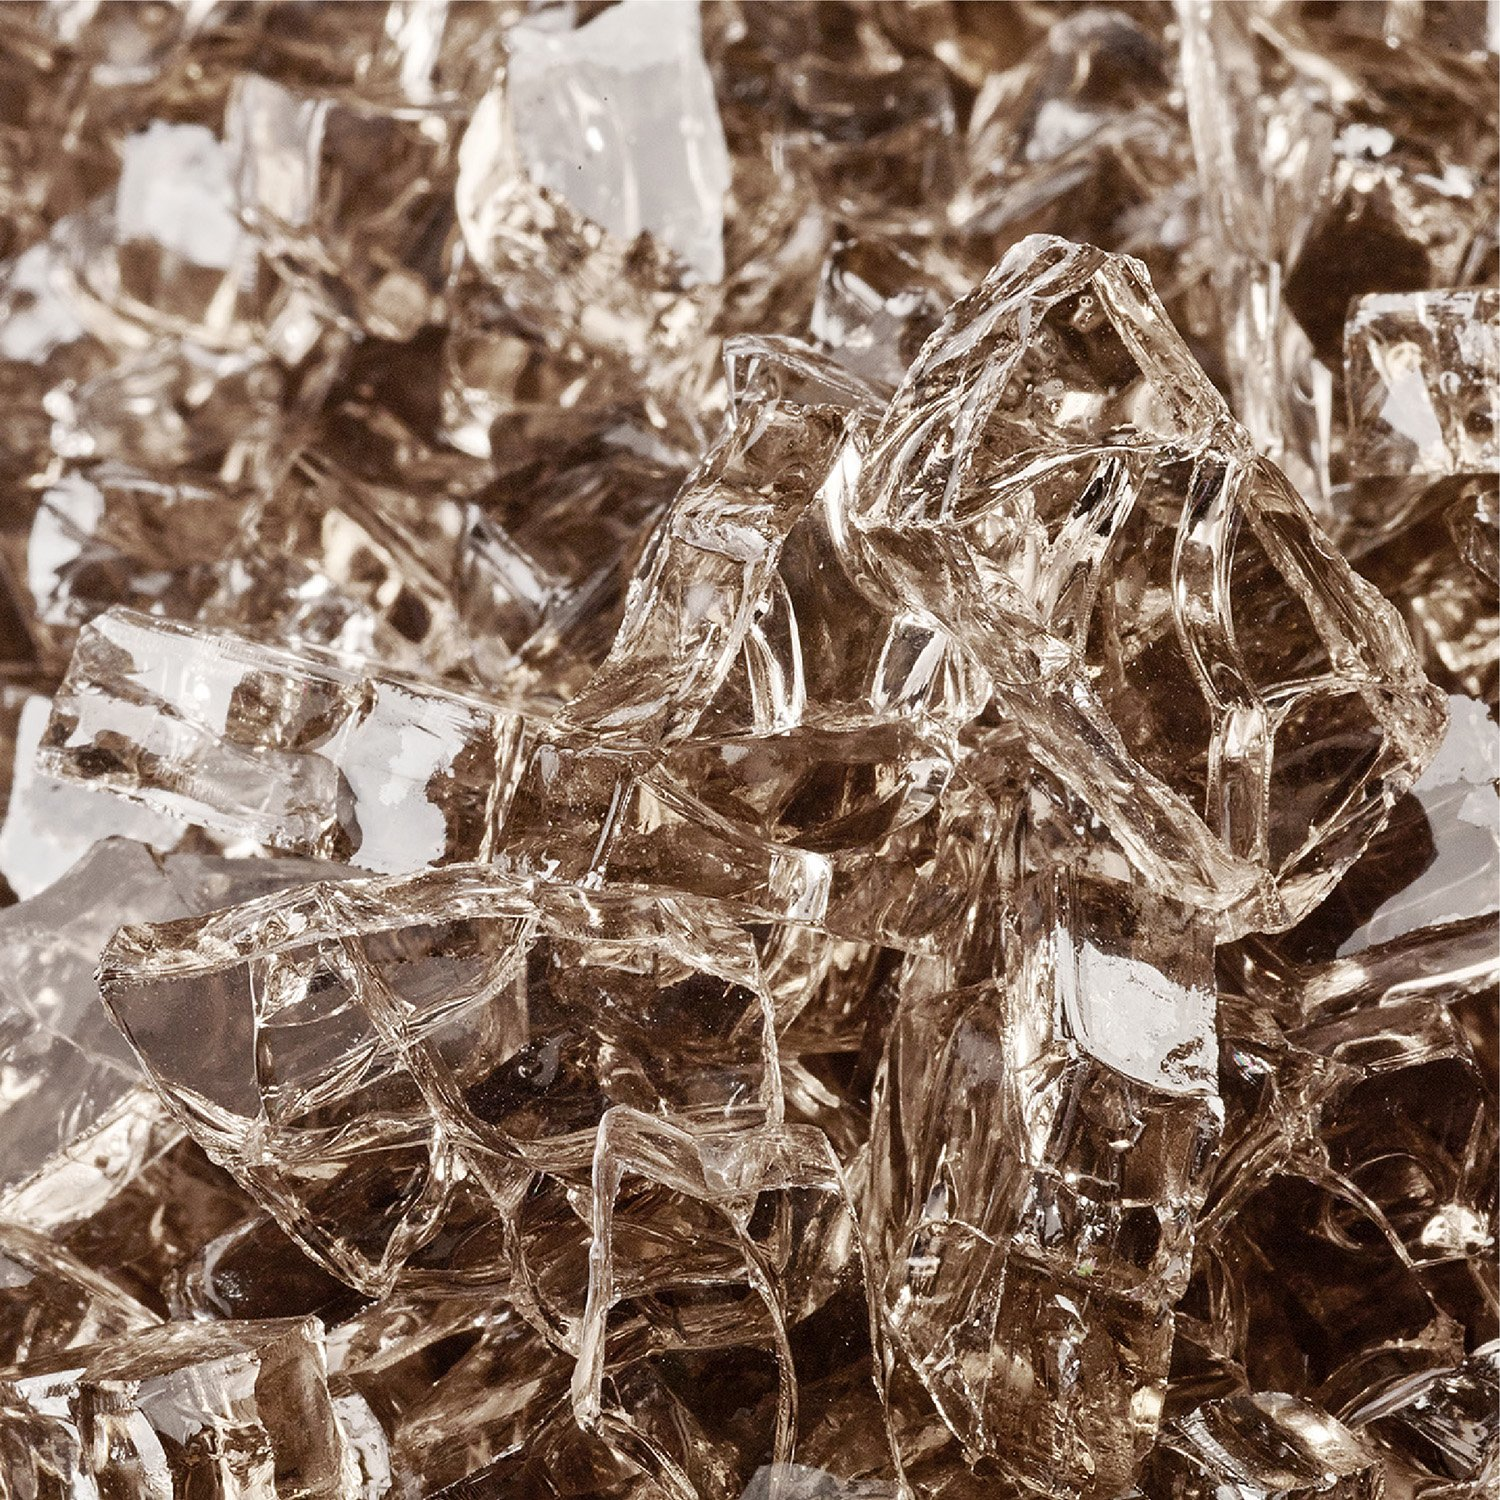 3//4 Inch Fire Glass Beads for Indoor and Outdoor Fire Pits or Fireplaces Snow White 10 Pounds